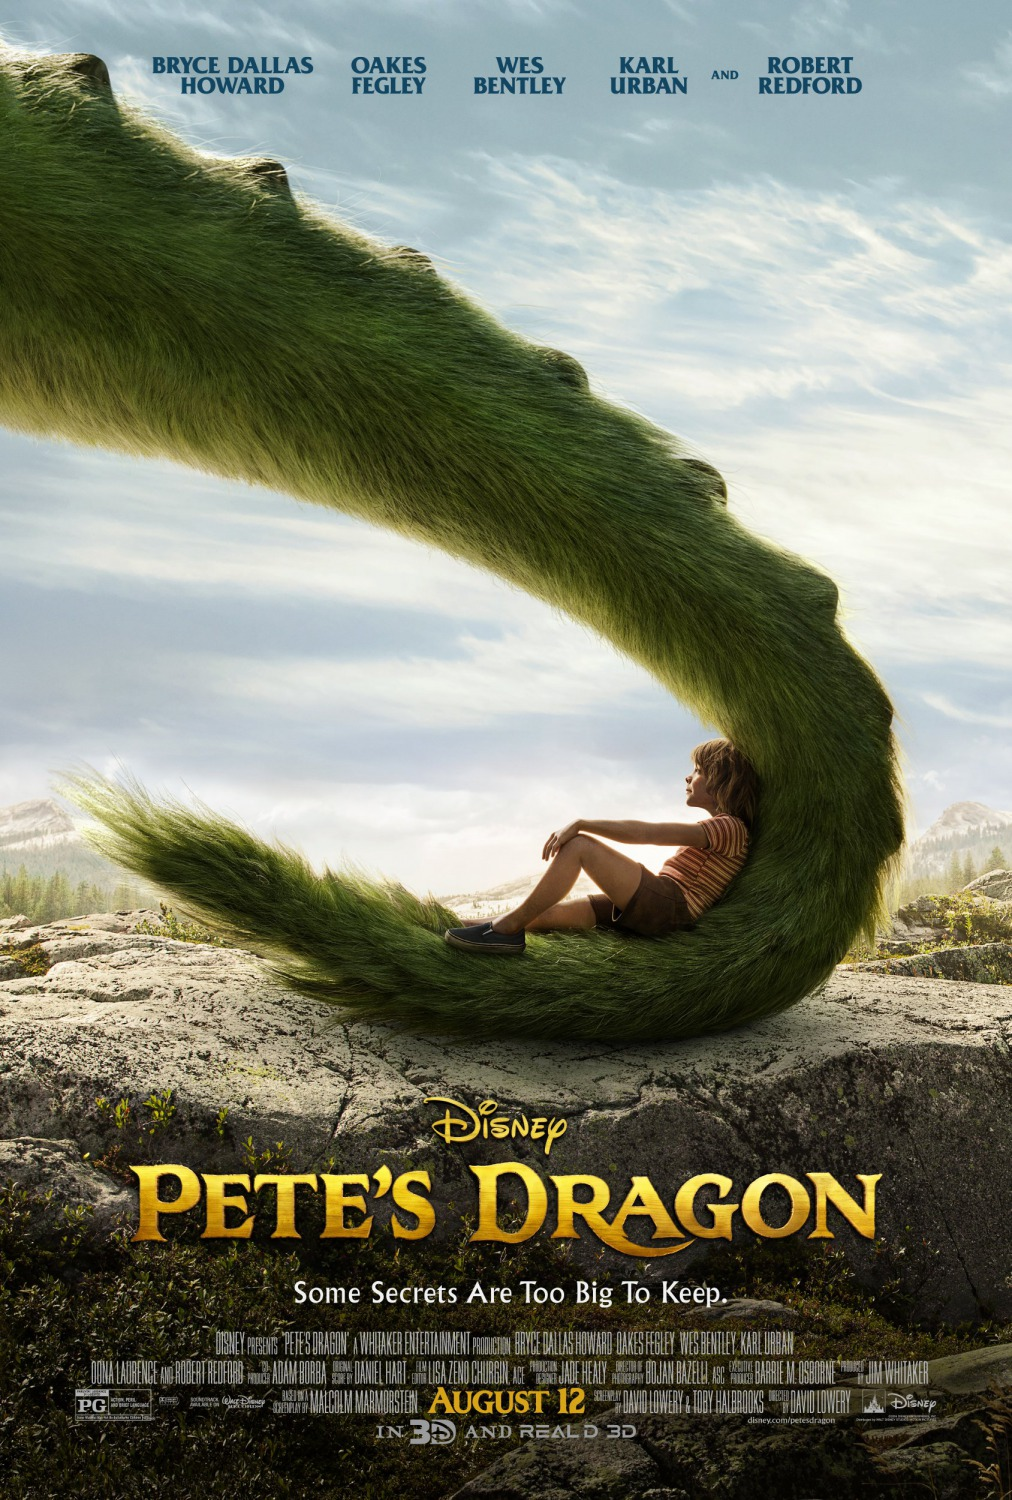 Image result for pete's dragon movie poster 2016